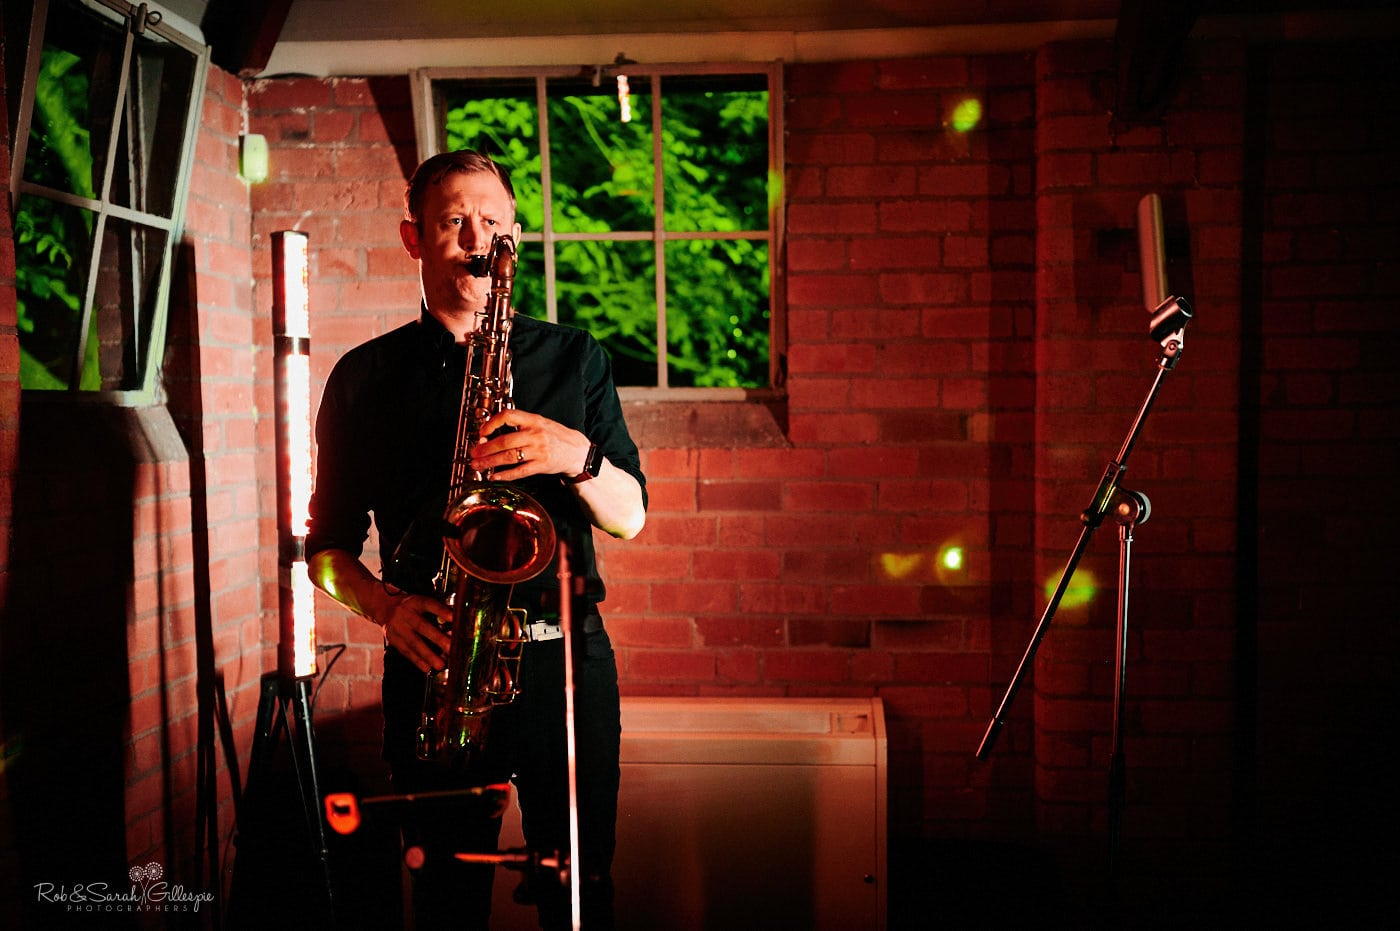 Saxophonist plays during wedding party